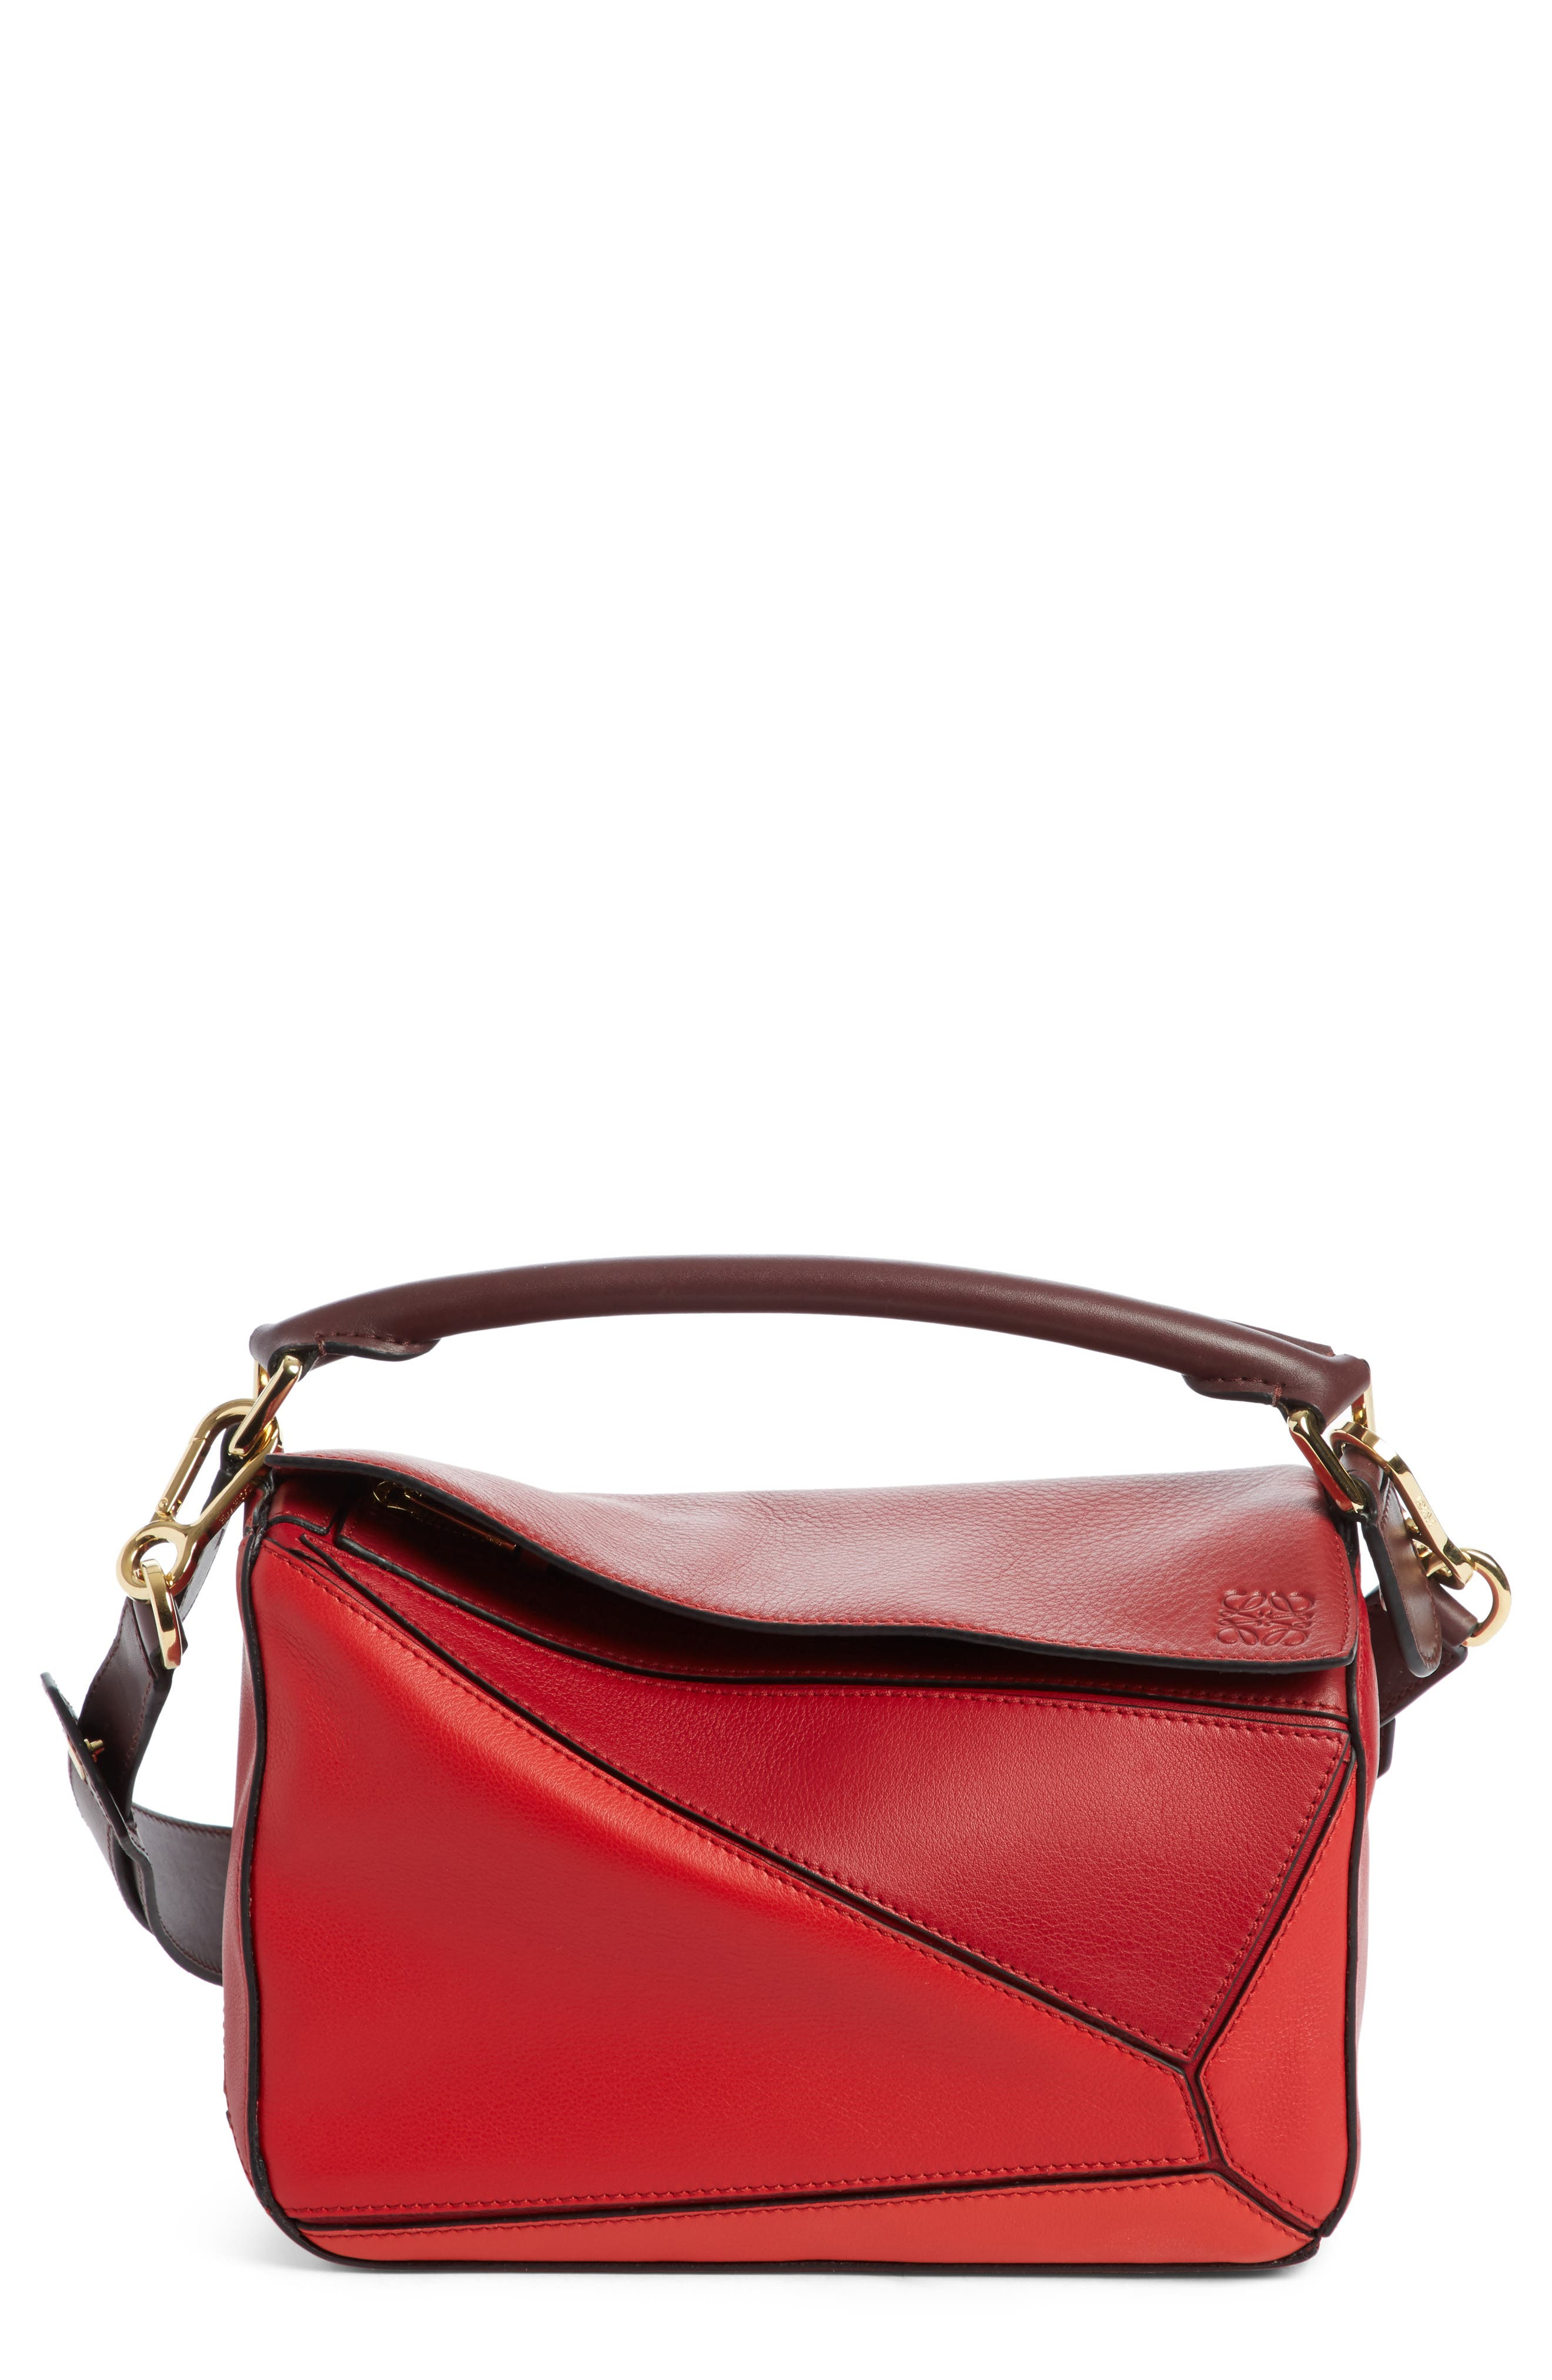 Alternate Image 1 Selected - Loewe Small Colorblock Puzzle Bag